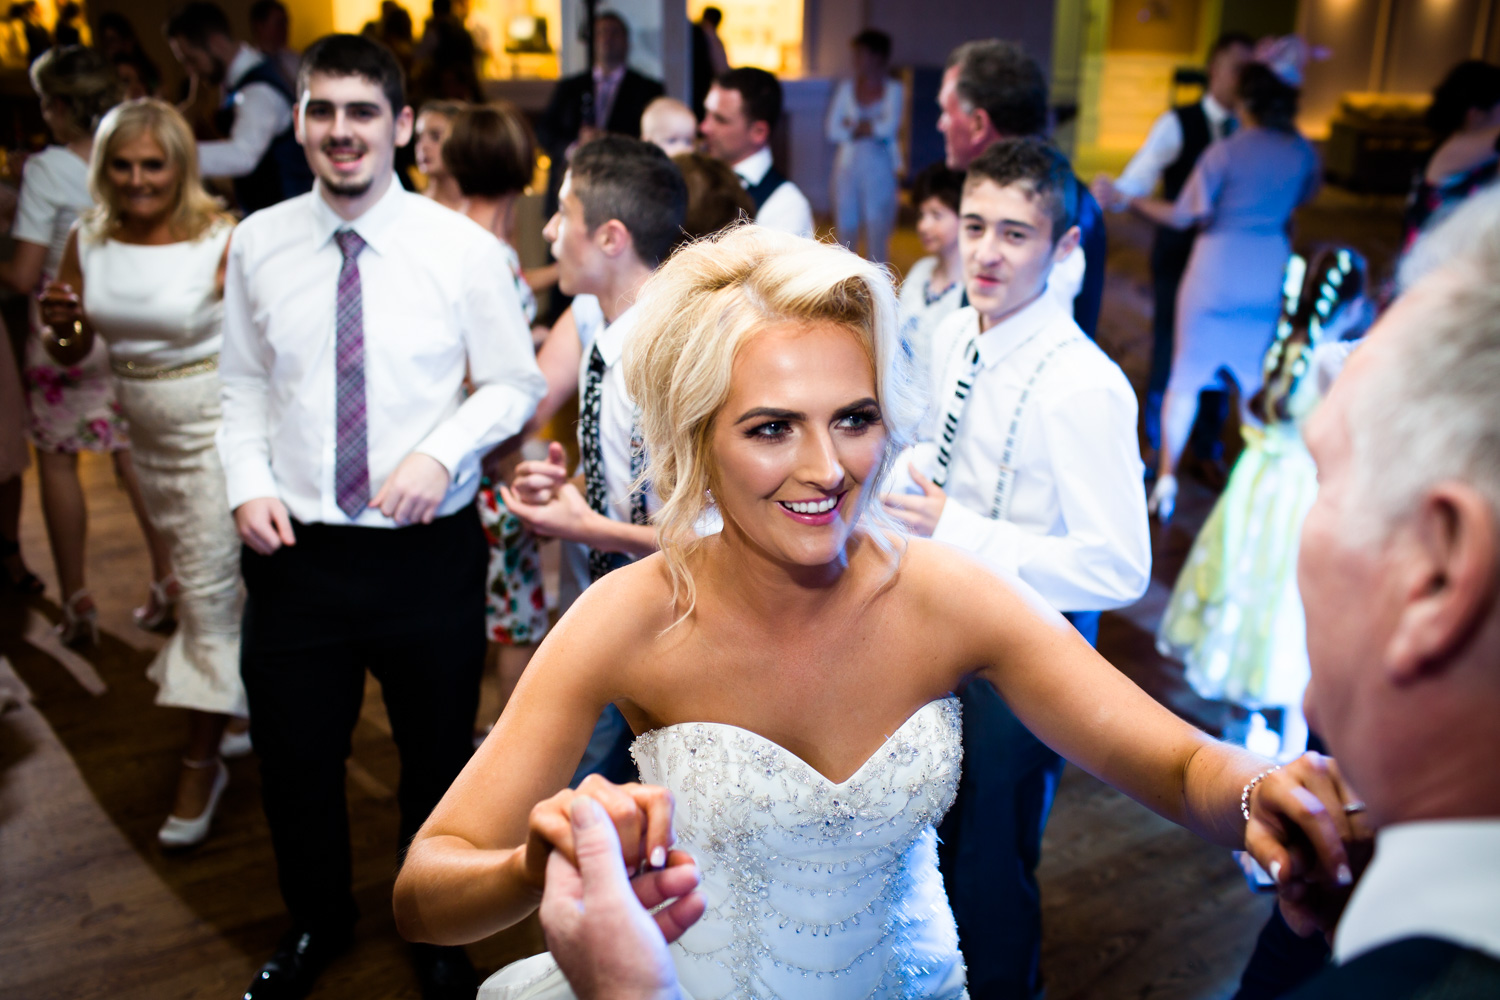 Mark_Barnes_wedding_photographer_Northern_Ireland_Wedding_photography_Carlingford_Four_Seasons_Wedding-57.jpg